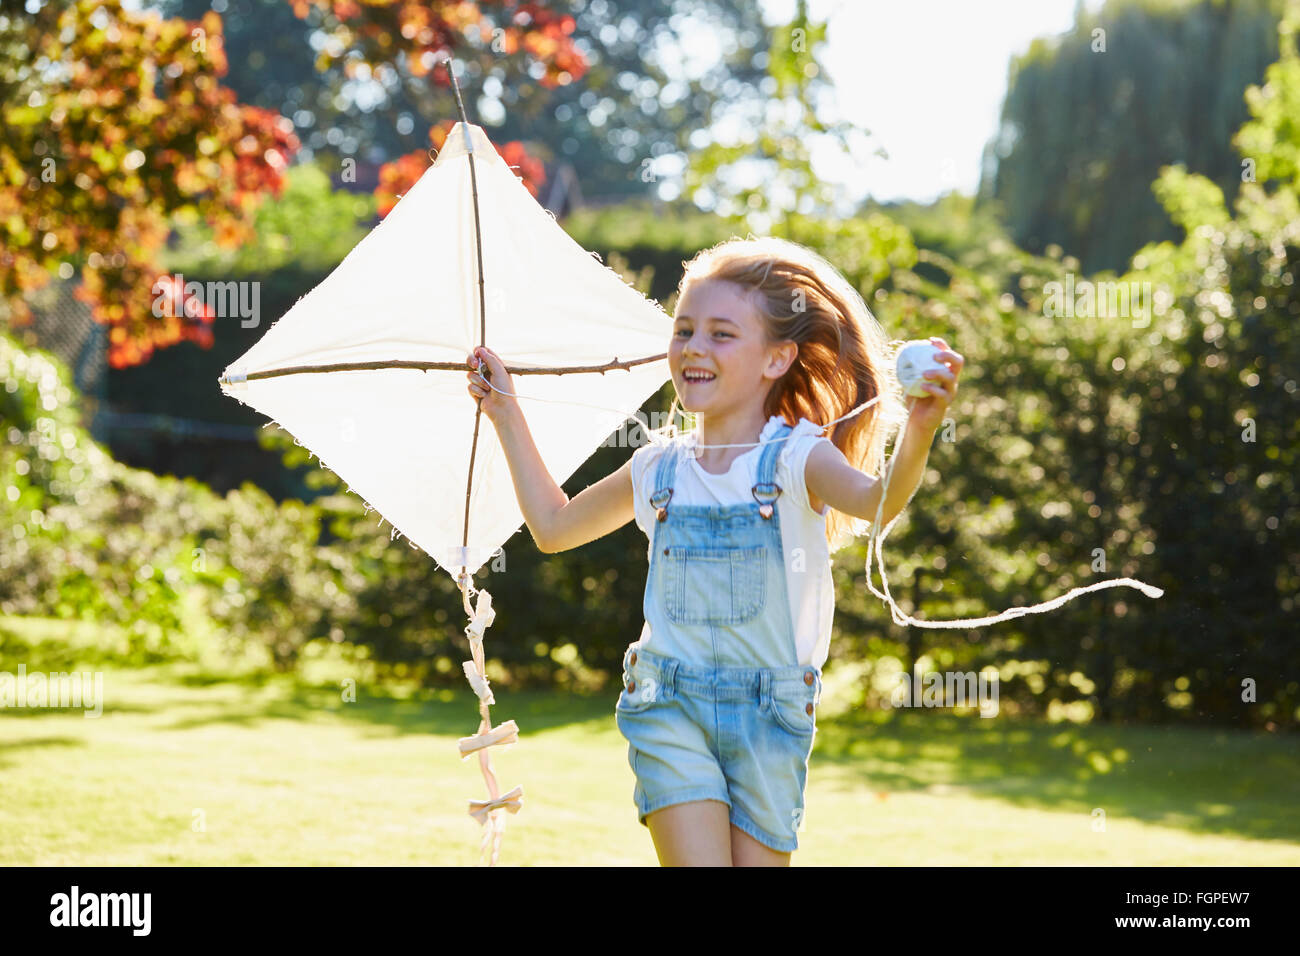 Enthusiastic girl running with kite in sunny garden - Stock Image